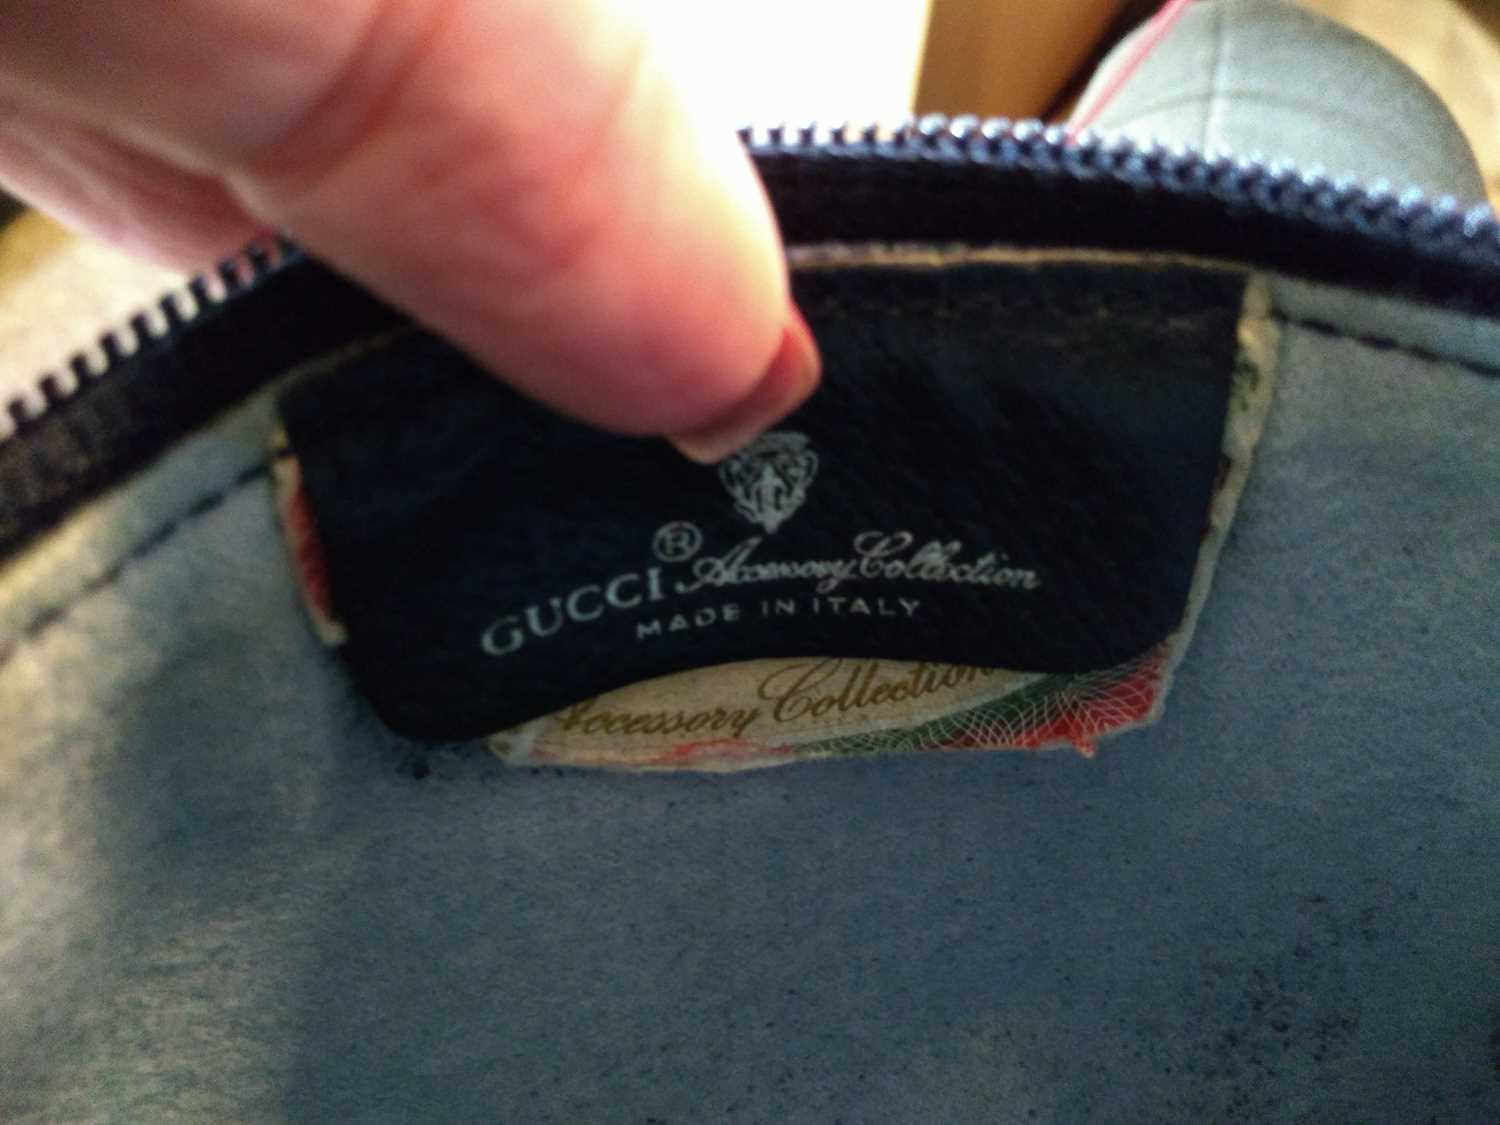 A Gucci Accessory Collection beige coated canvas and blue leather zip shoulder bag - Image 5 of 7